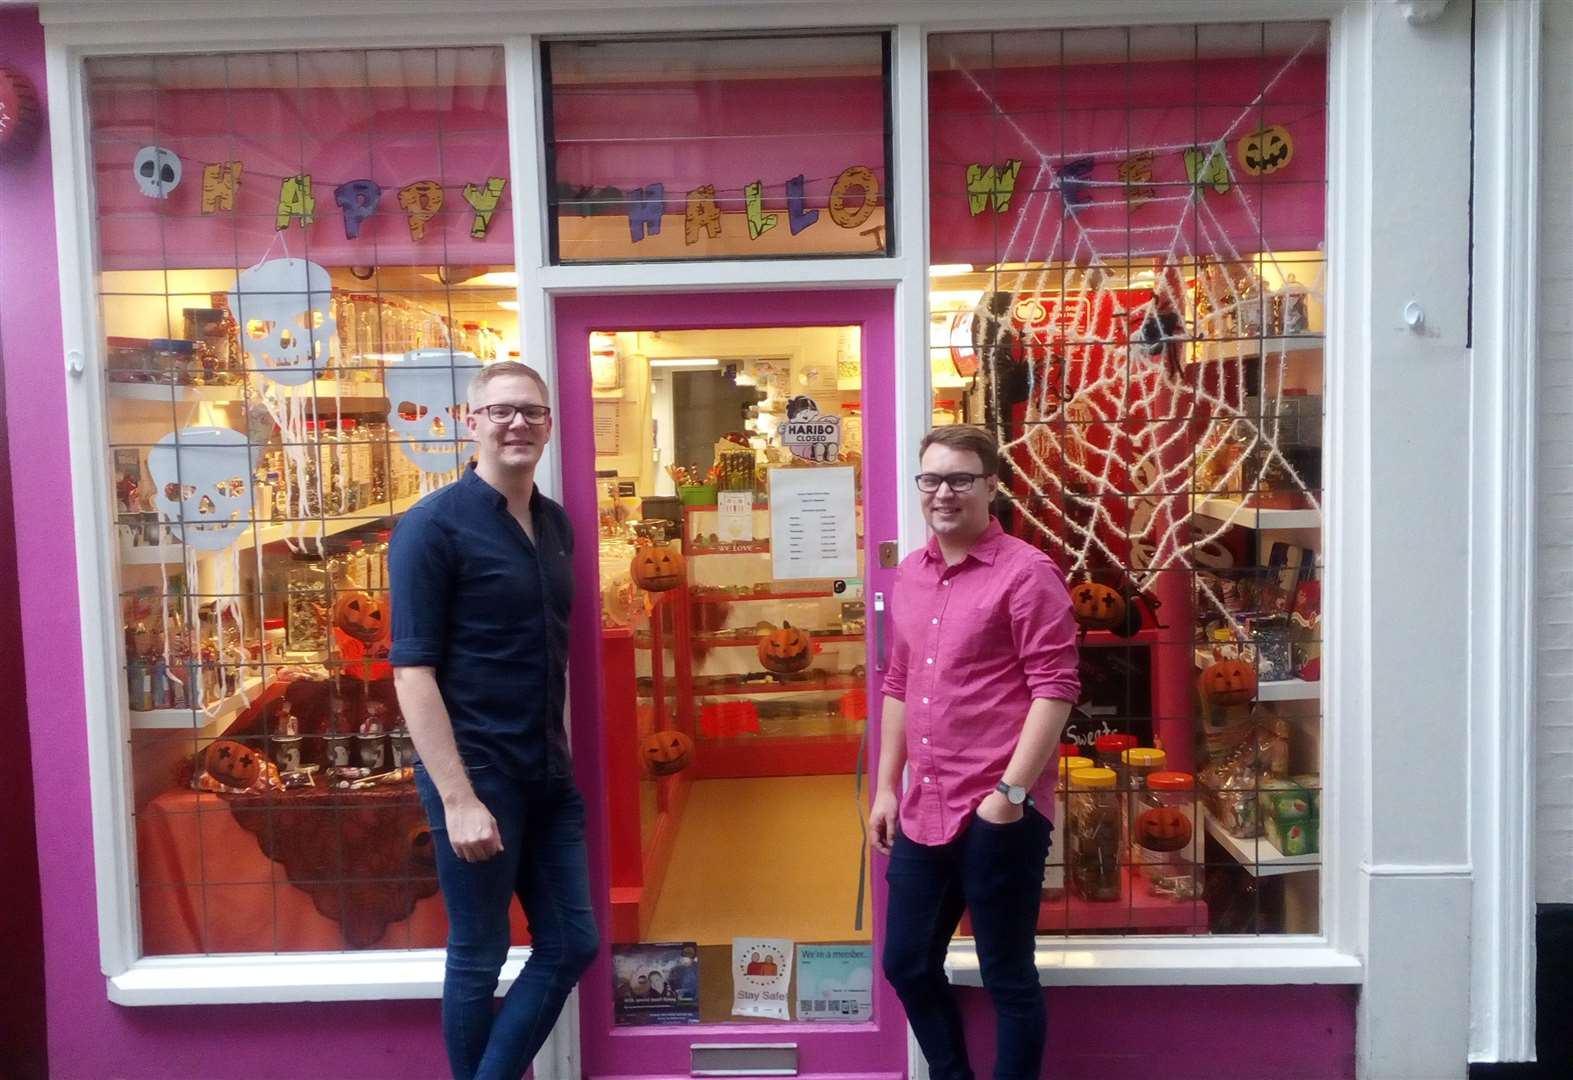 Meet the new owners of Auntie Pam's sweet shop